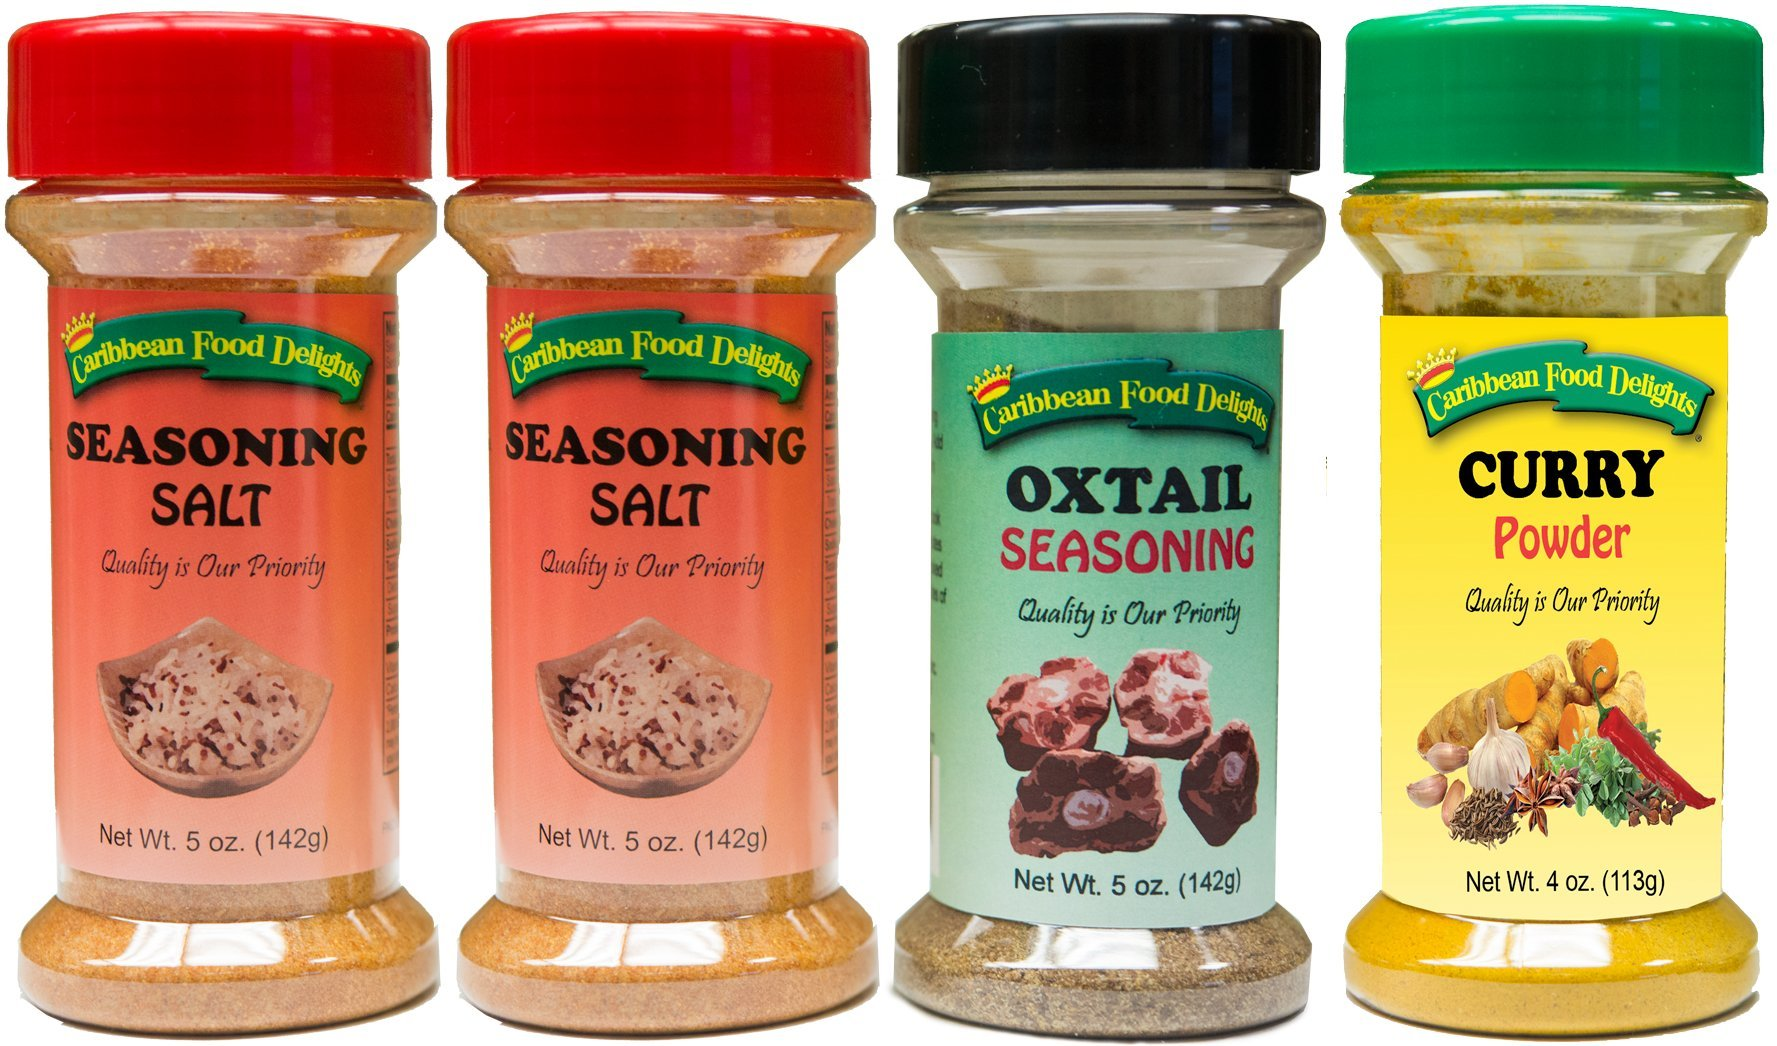 Seasoning Salt, Oxtail Seasoning, Curry Powder - Spices Variety 4 Pack